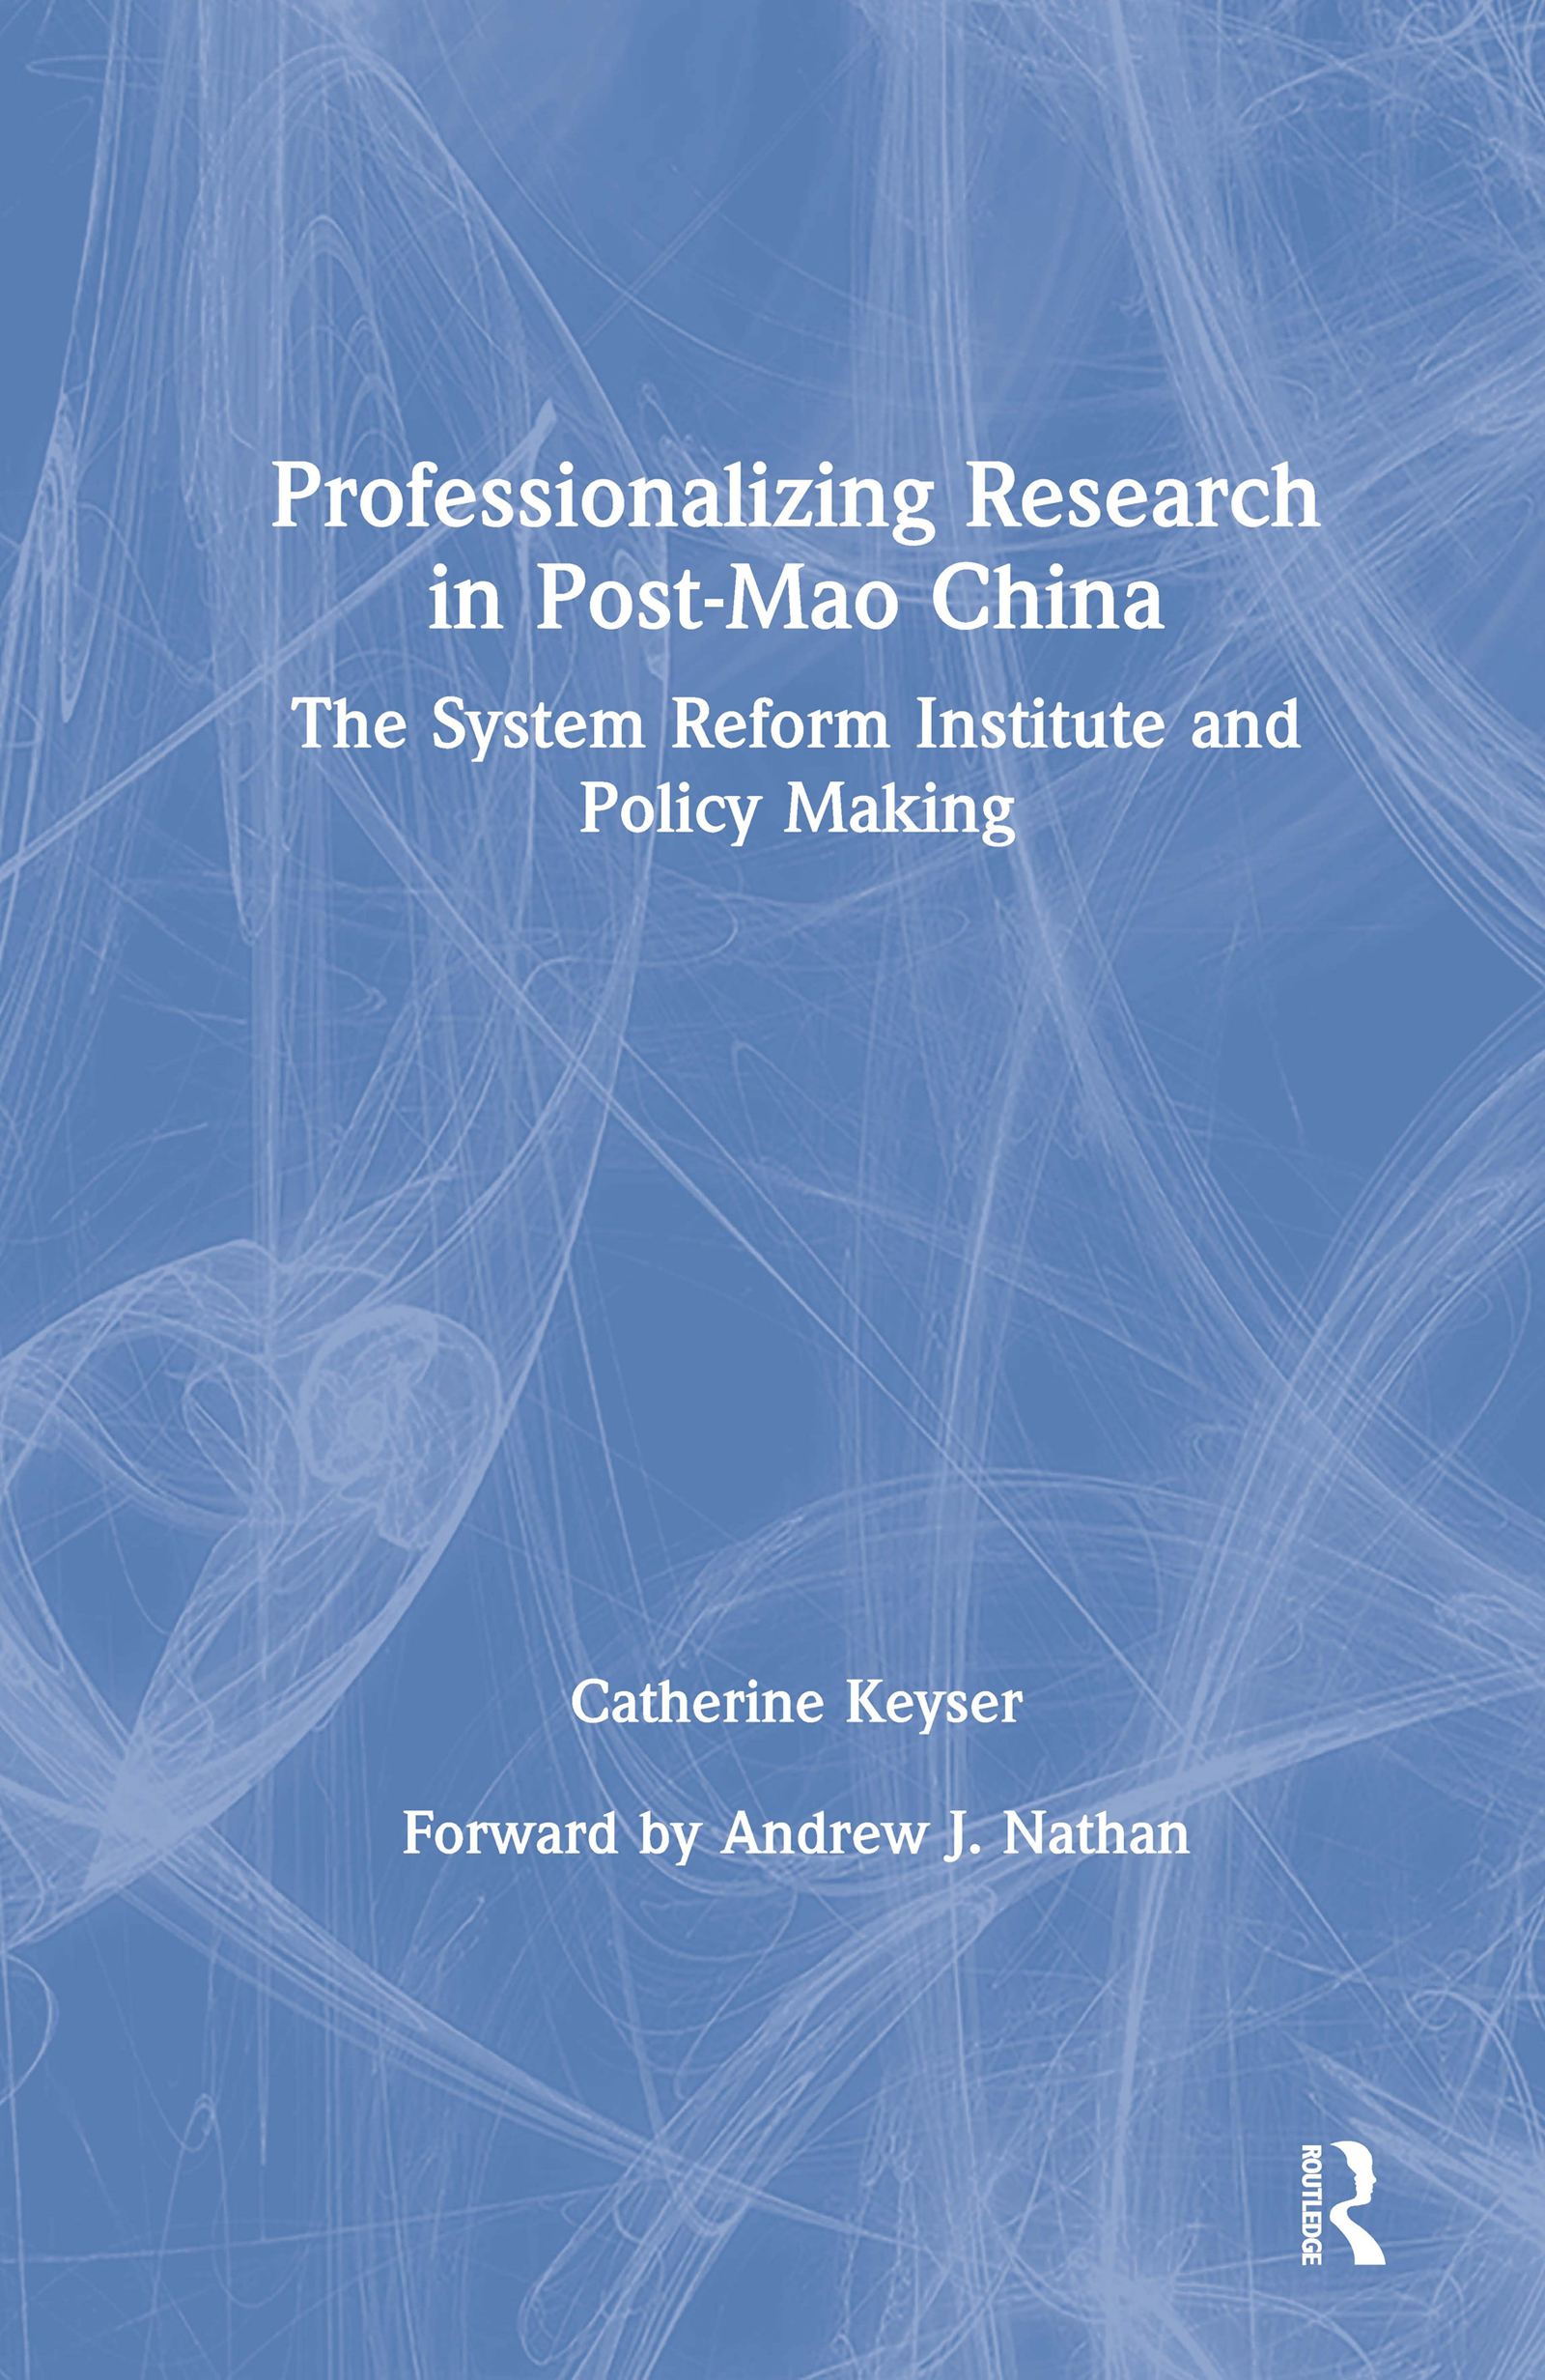 Professionalizing Research in Post-Mao China: The System Reform Institute and Policy Making: The System Reform Institute and Policy Making, 1st Edition (Hardback) book cover